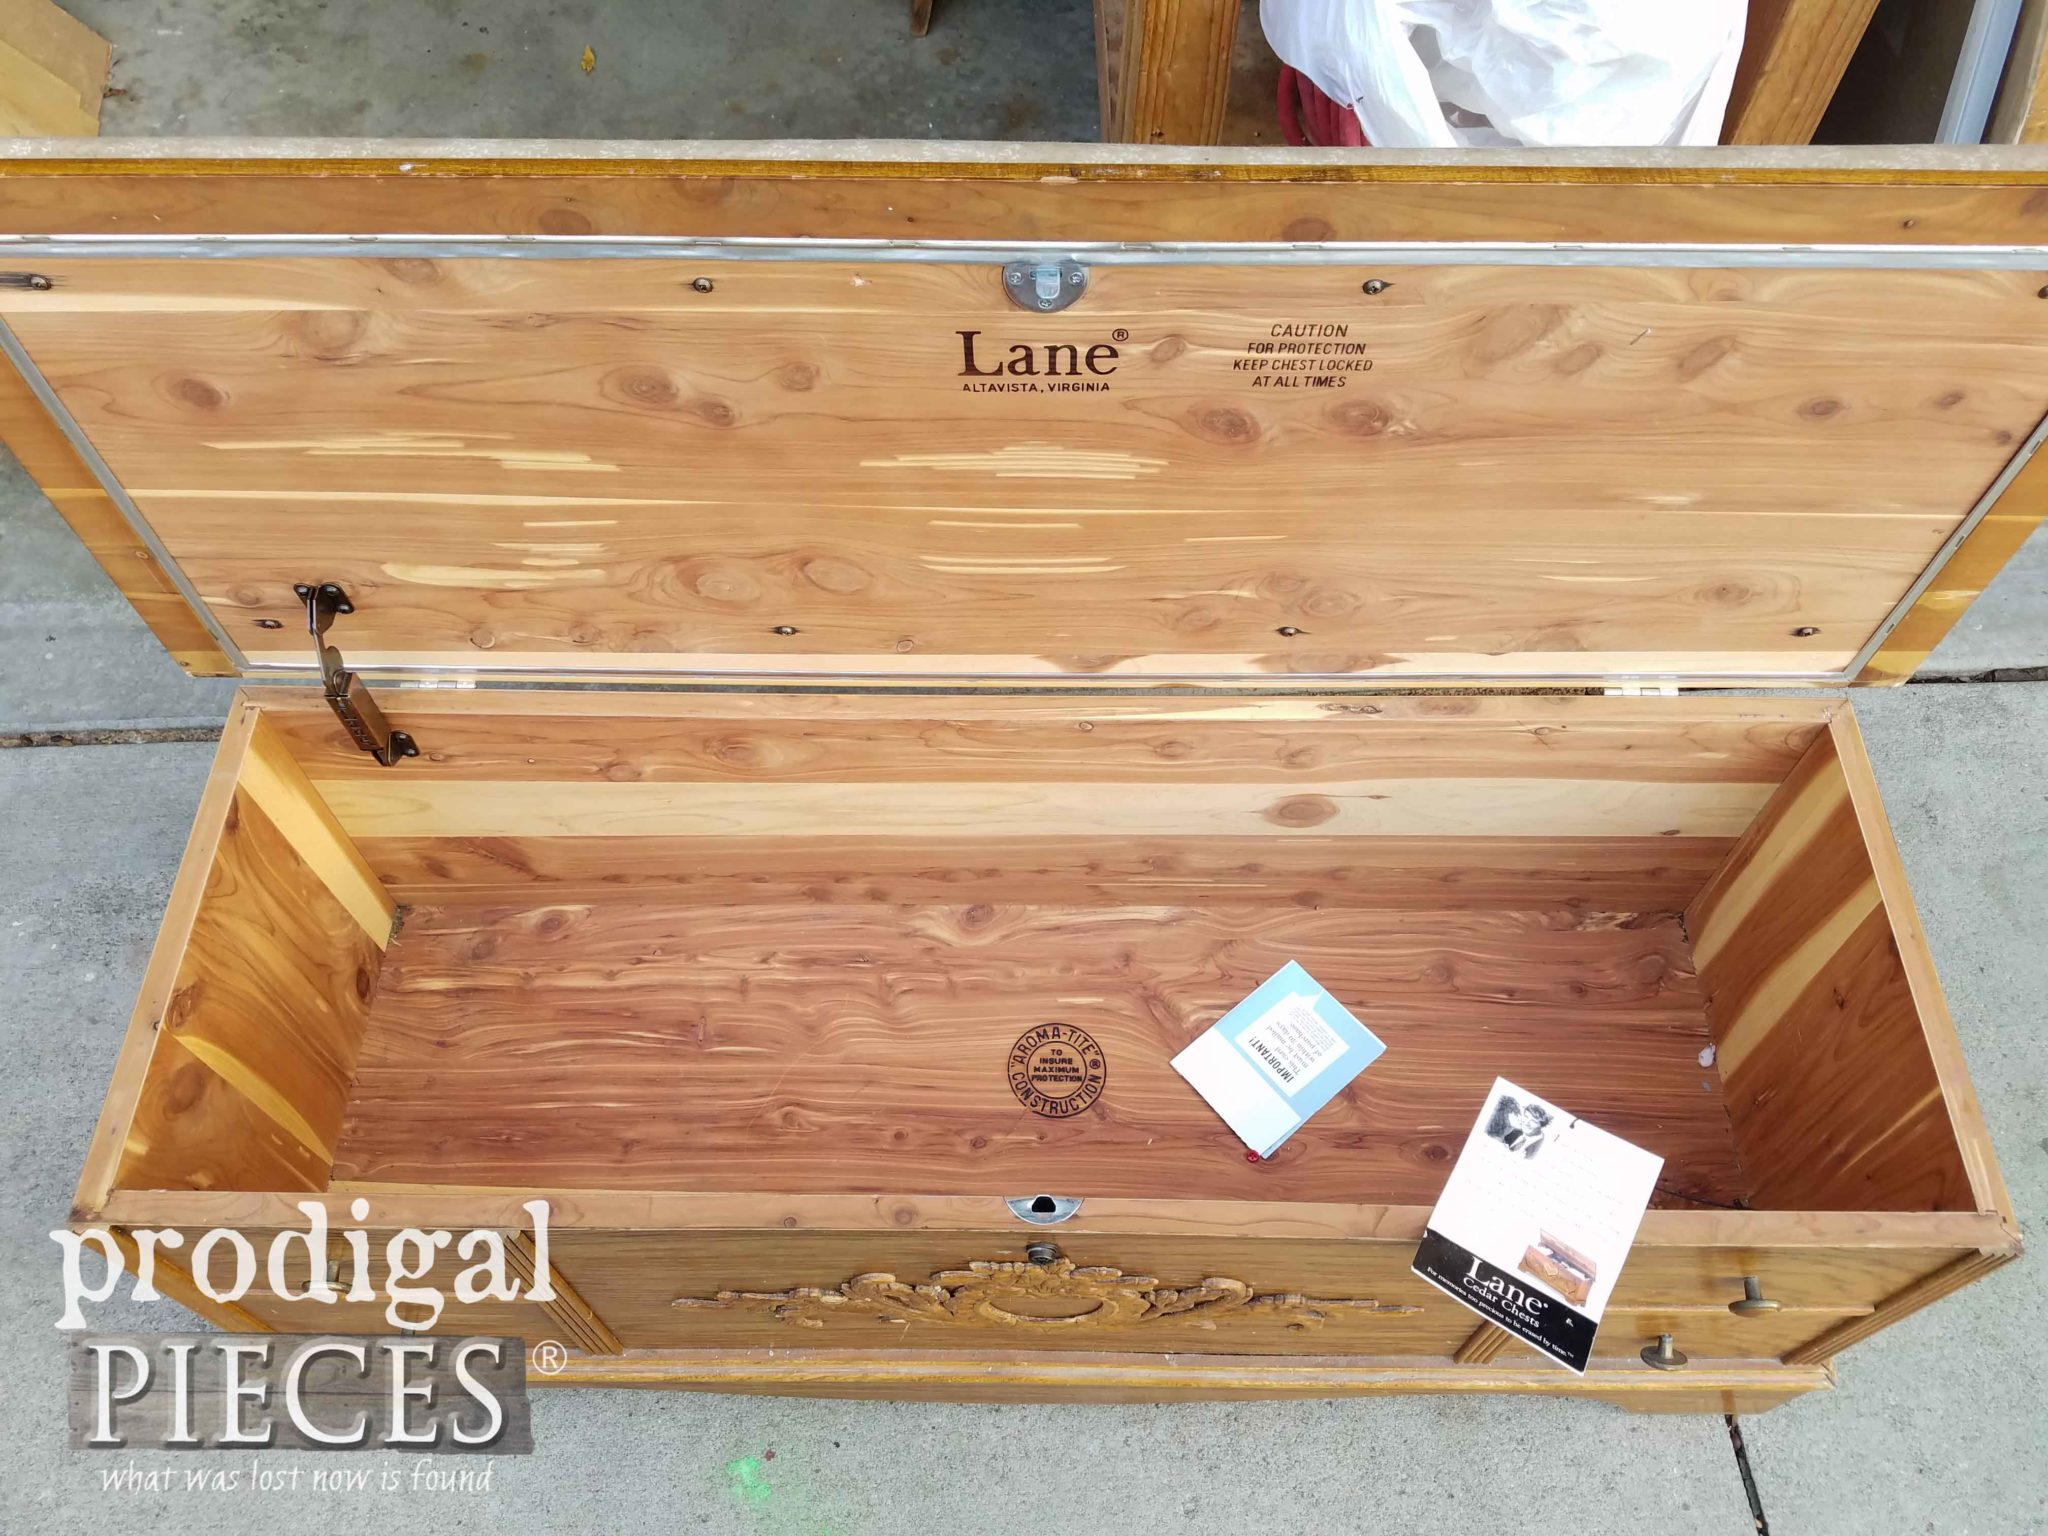 Cedar Lined Lane Blanket Chest | prodigalpieces.com